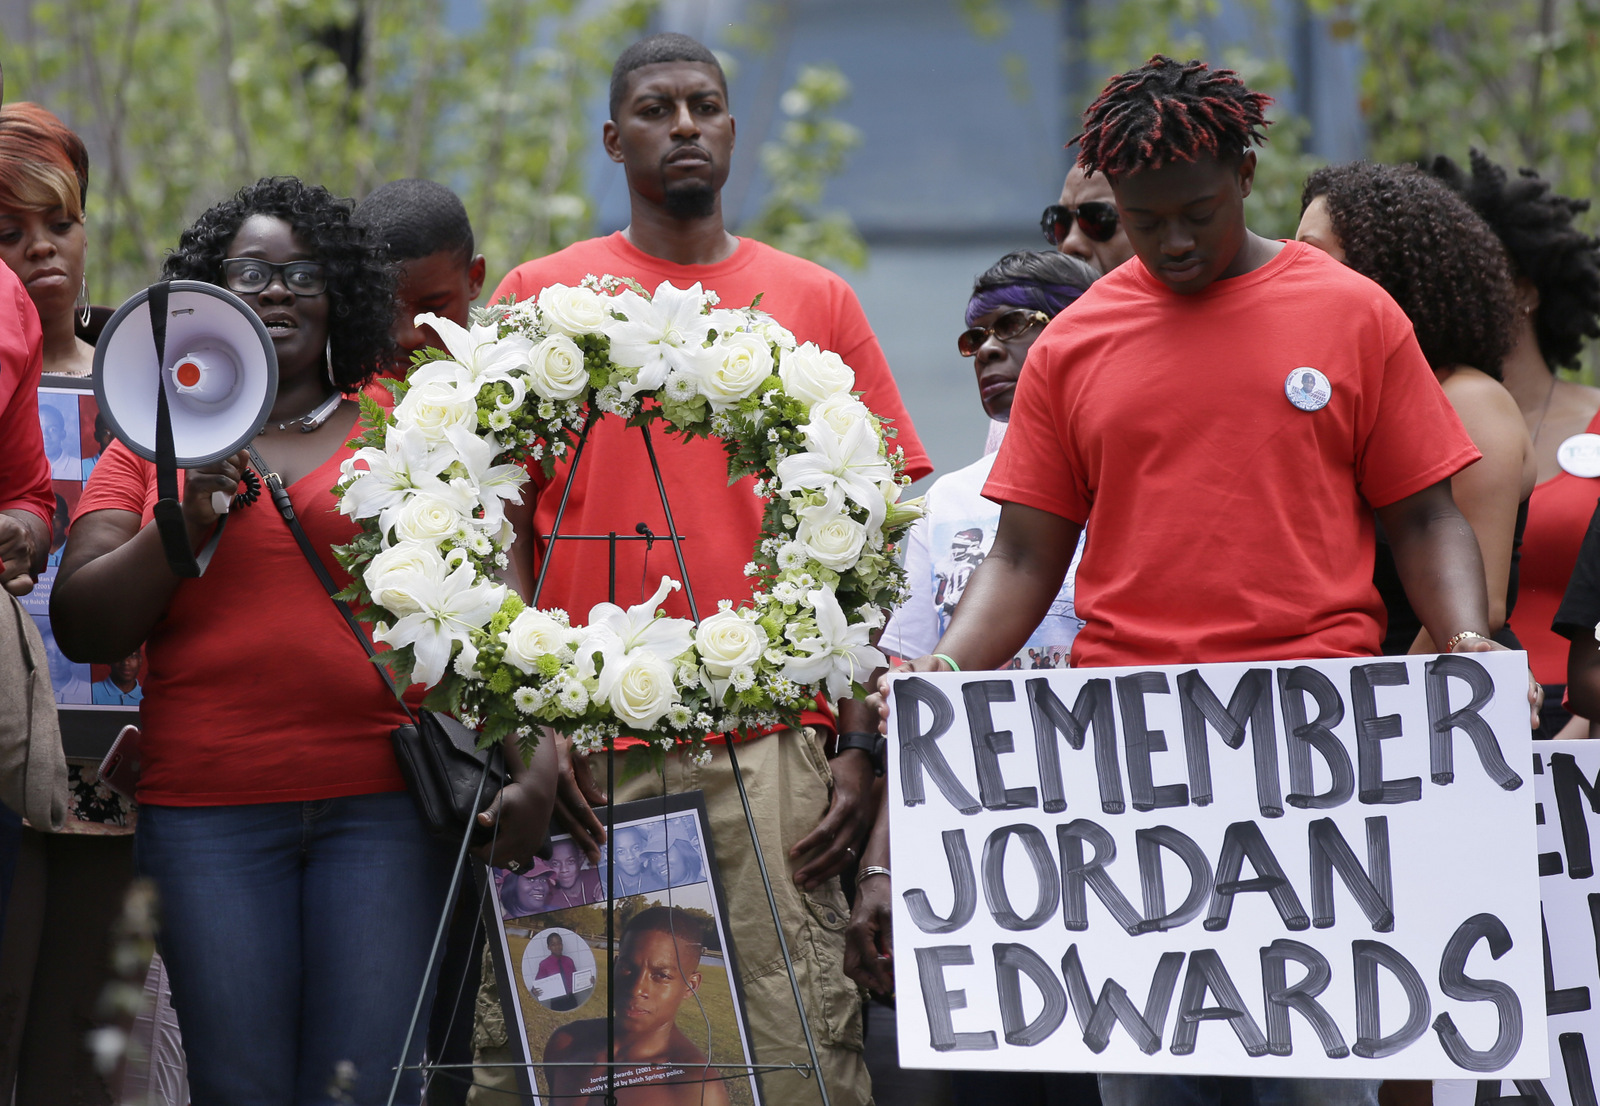 Slain teen Jordan Edwards' mother Charmaine Edwards, left, speaks to supporters with son Vidal Allen, right, and husband Odell Edwards during a protest outside the court house in Dallas.(AP/LM Otero)